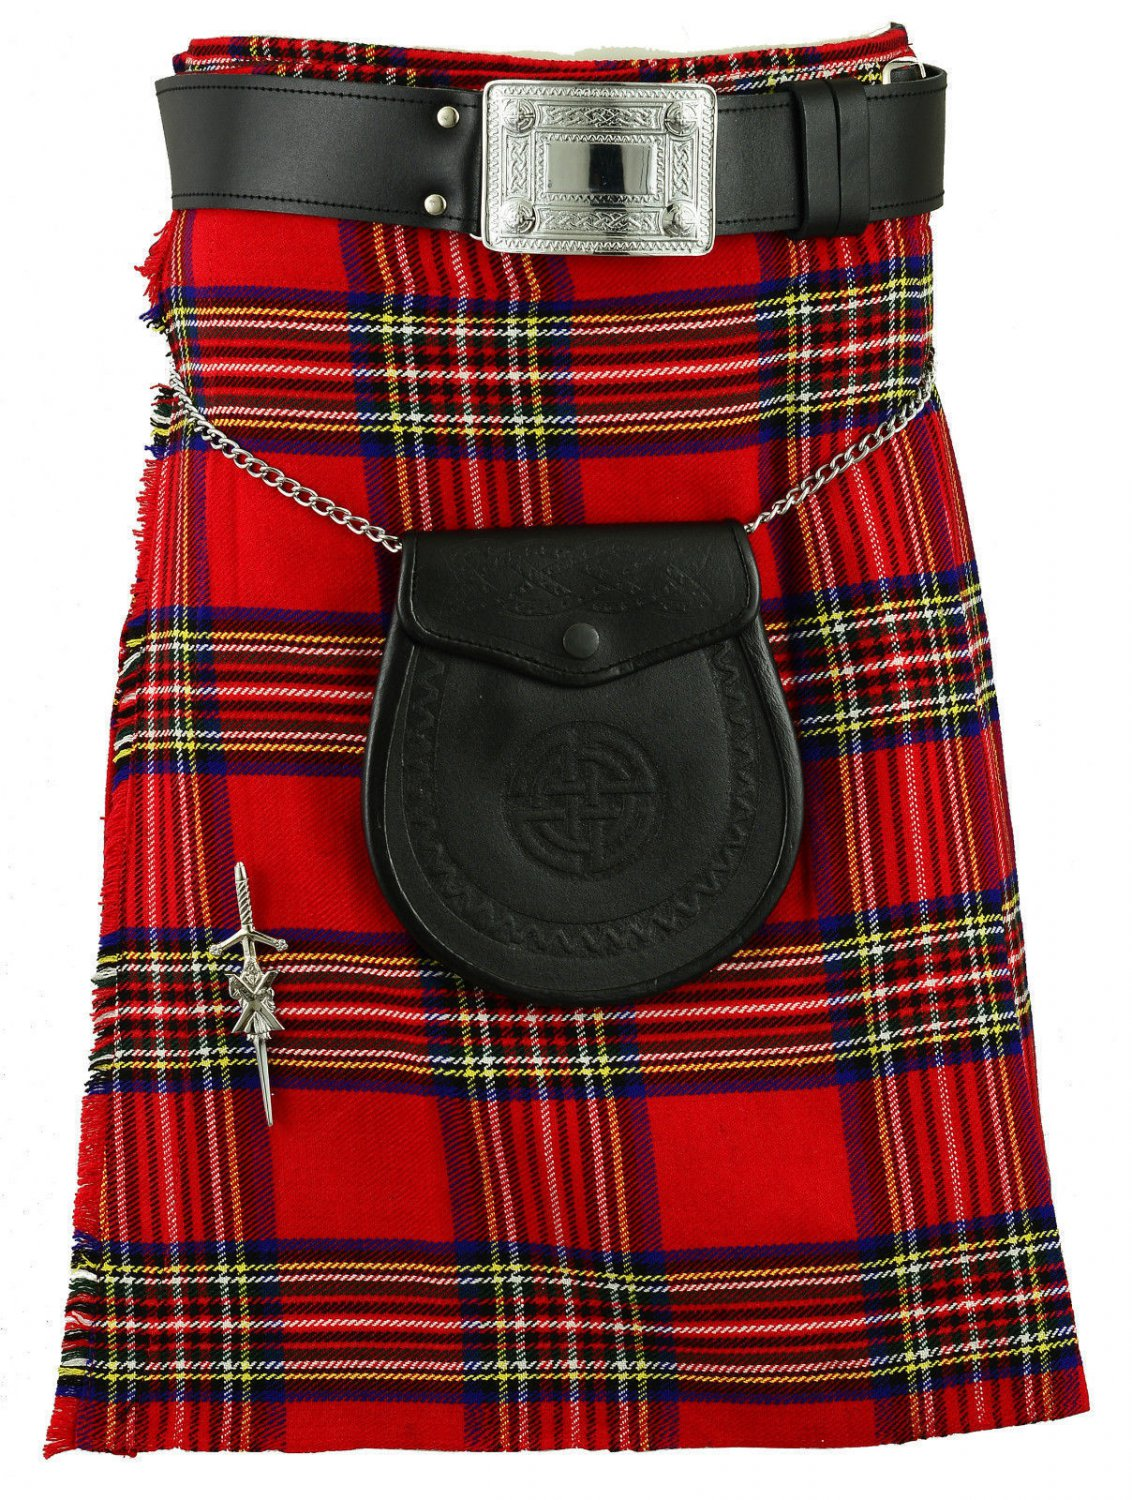 Traditional Royal Stewart Tartan Kilts Scottish Highland Utility Size 38 Sports Kilt for Men